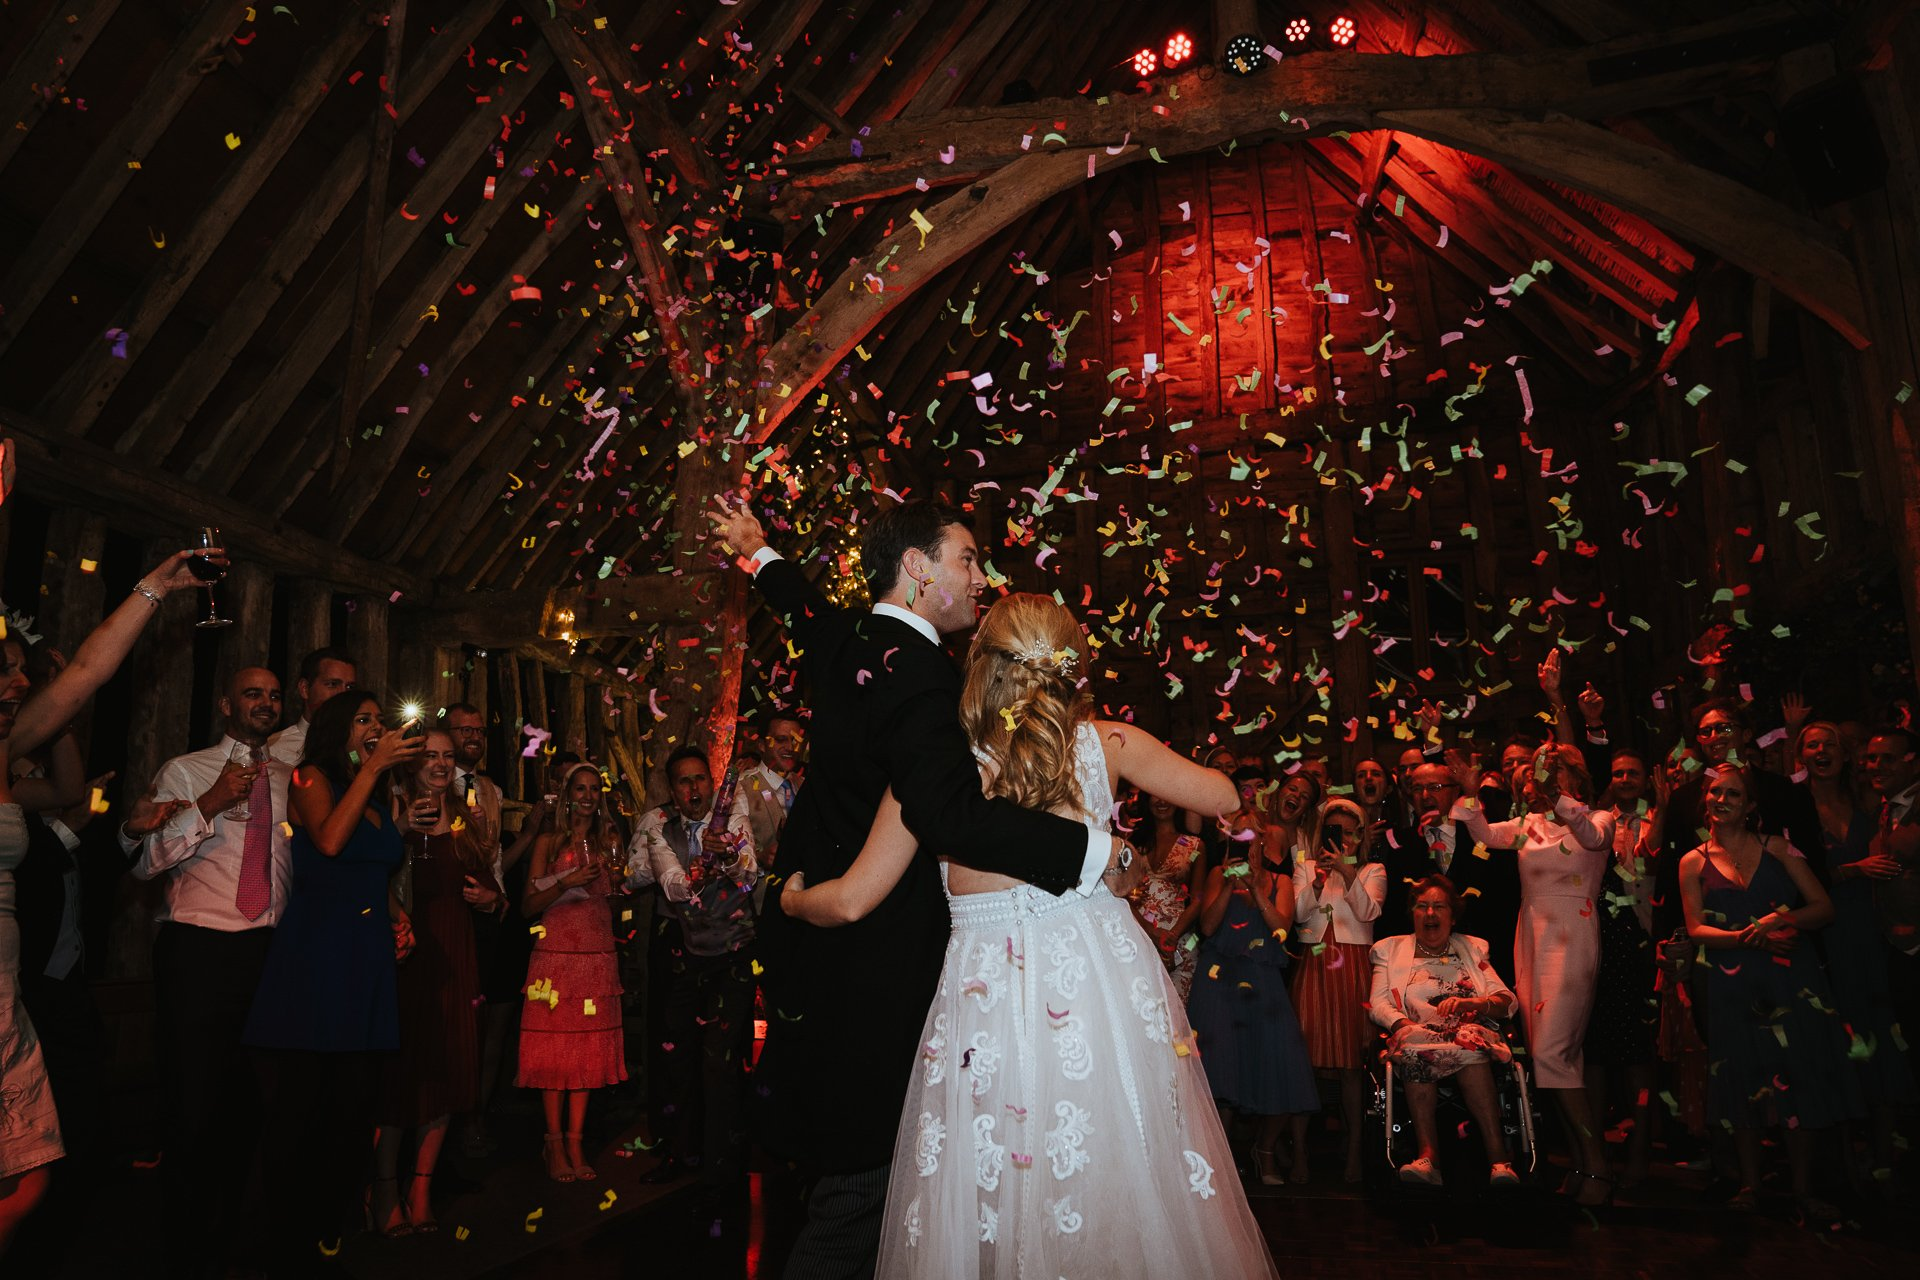 Bride and Groom showered with confetti canon